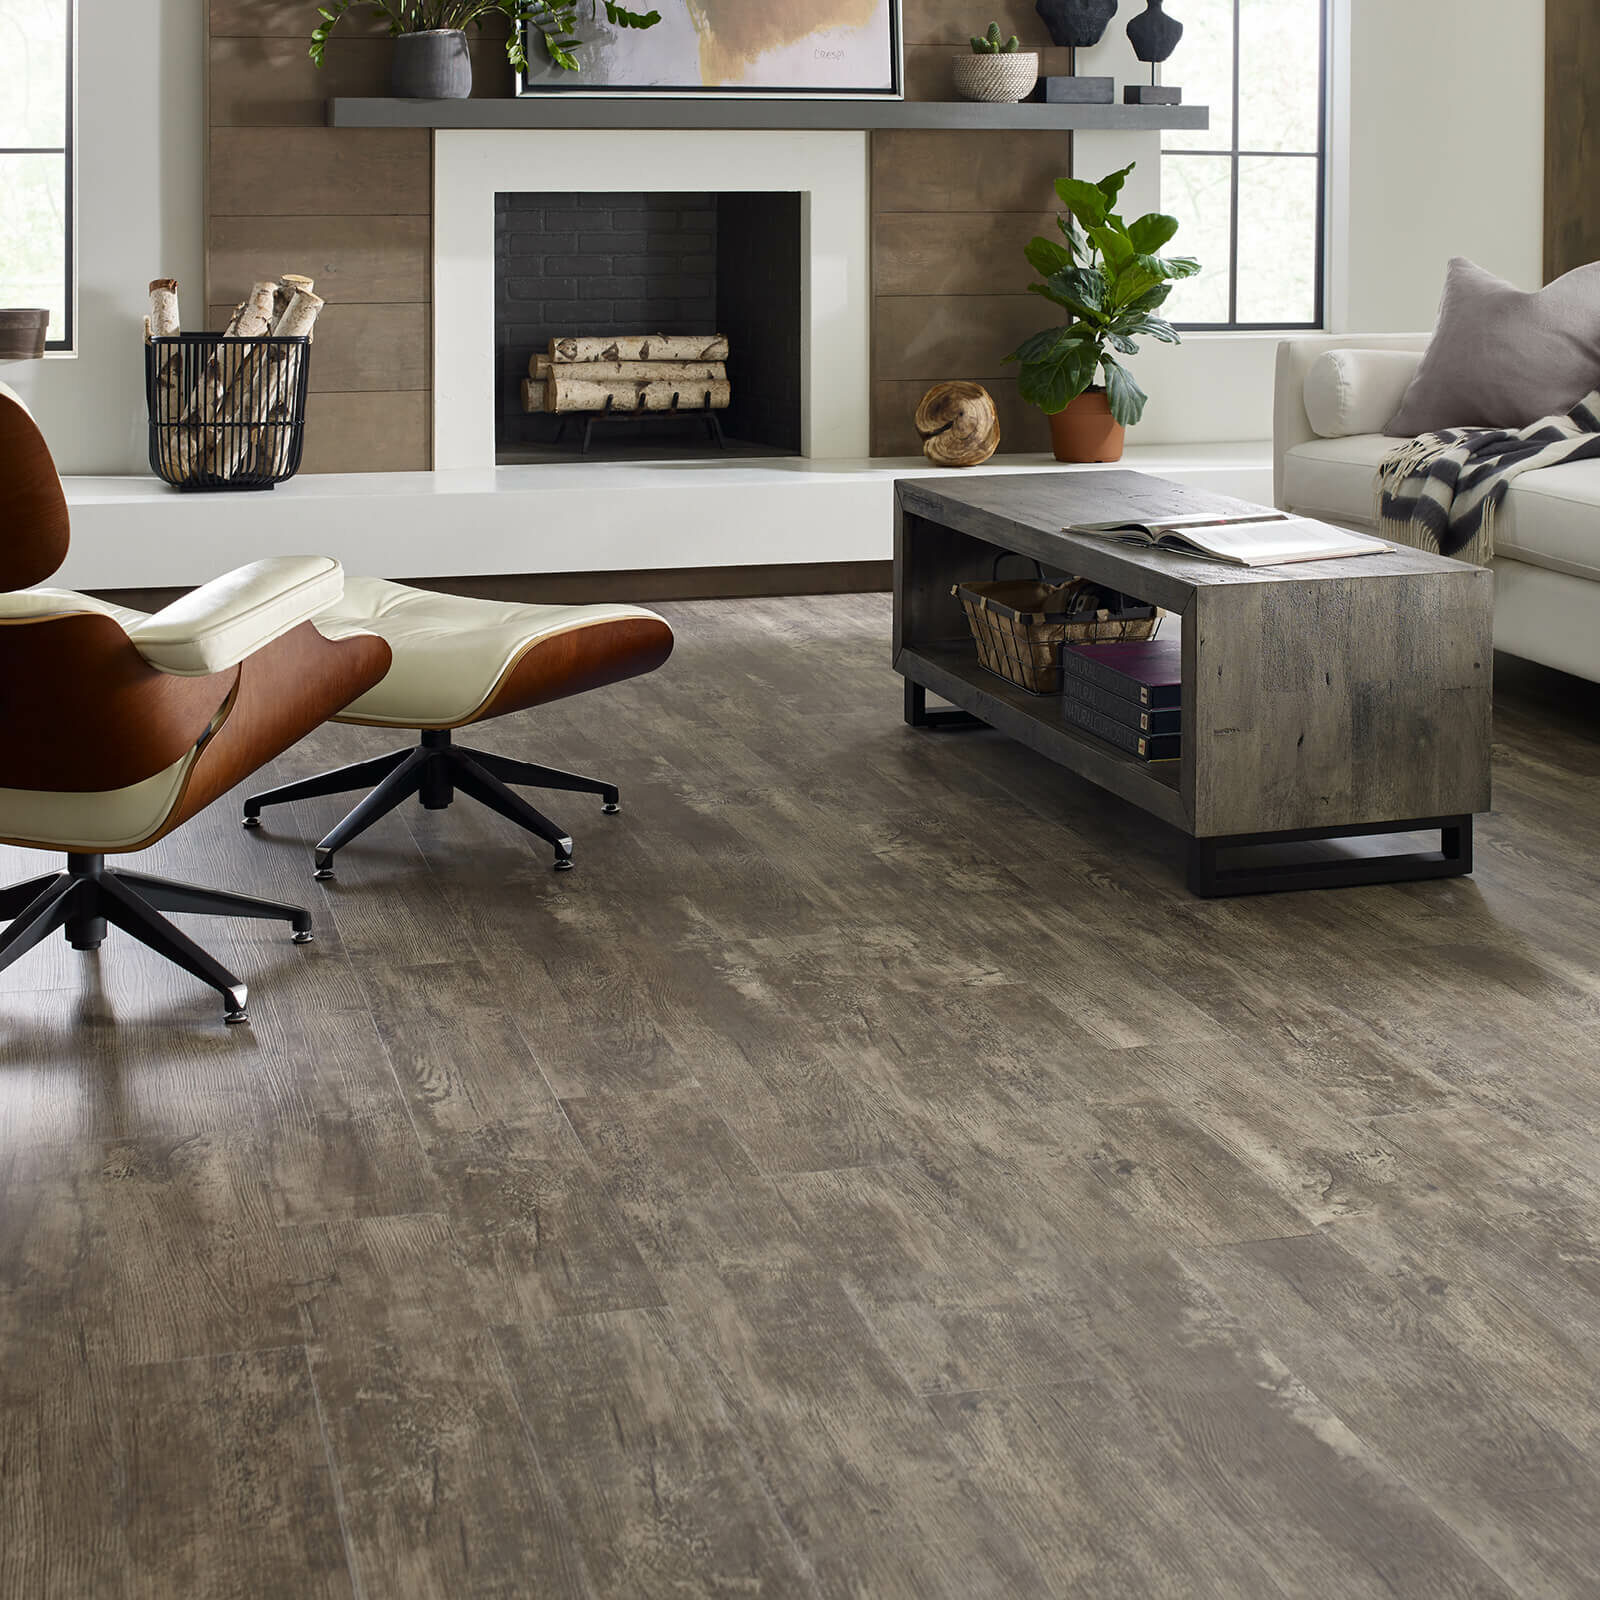 Living room flooring | Price Flooring